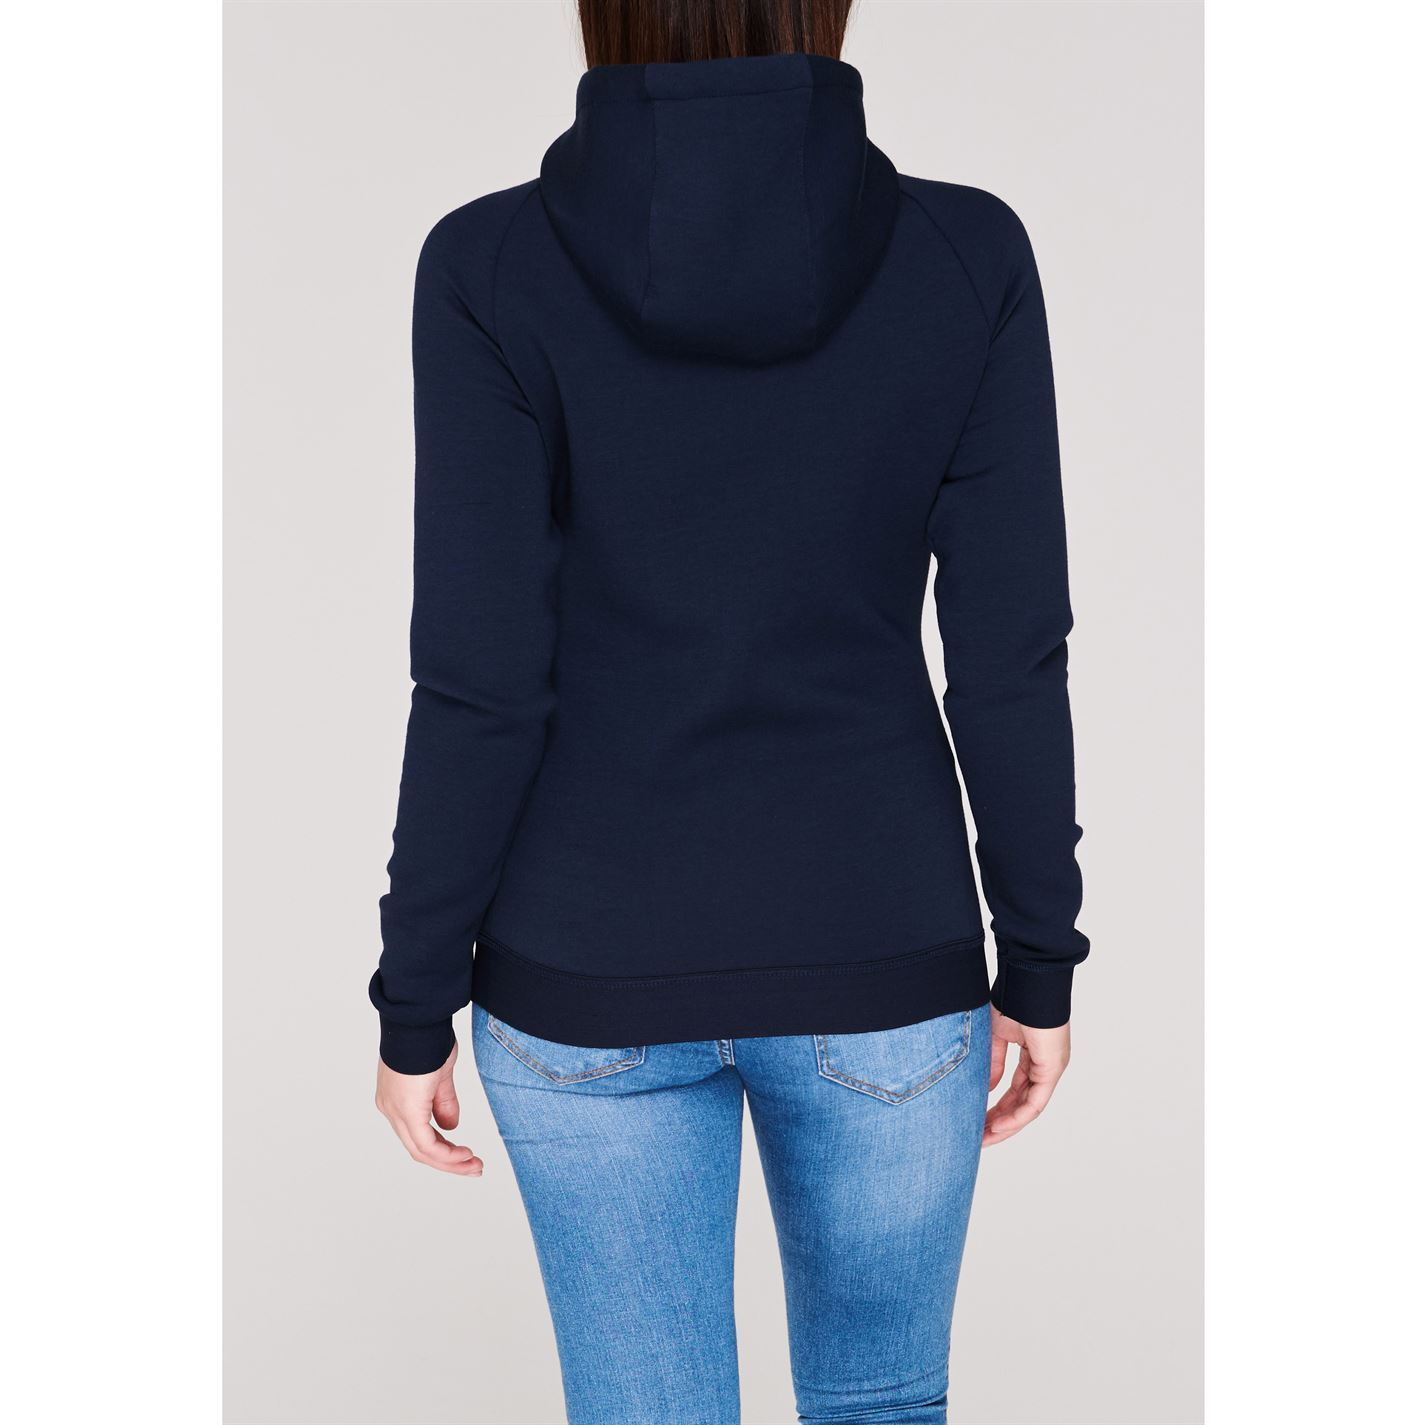 Details about Horseware Lara Sports Hoody Womens Sweatshirt Sweater Hooded Navy Outerwear